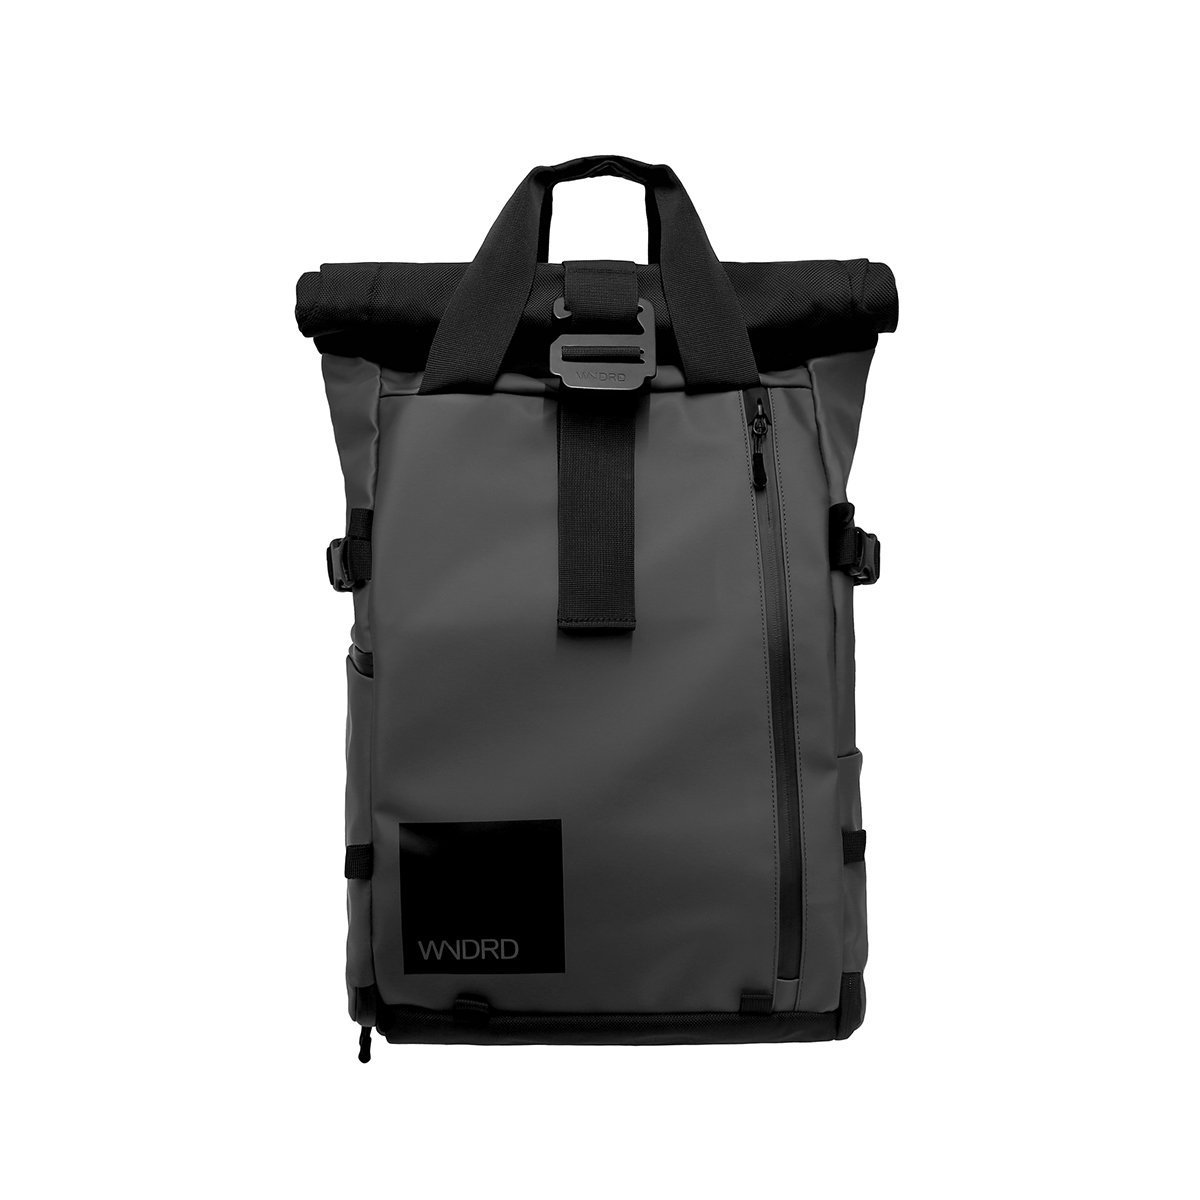 Prvke DSLR Camera Backpack Black Friday Deals 2019